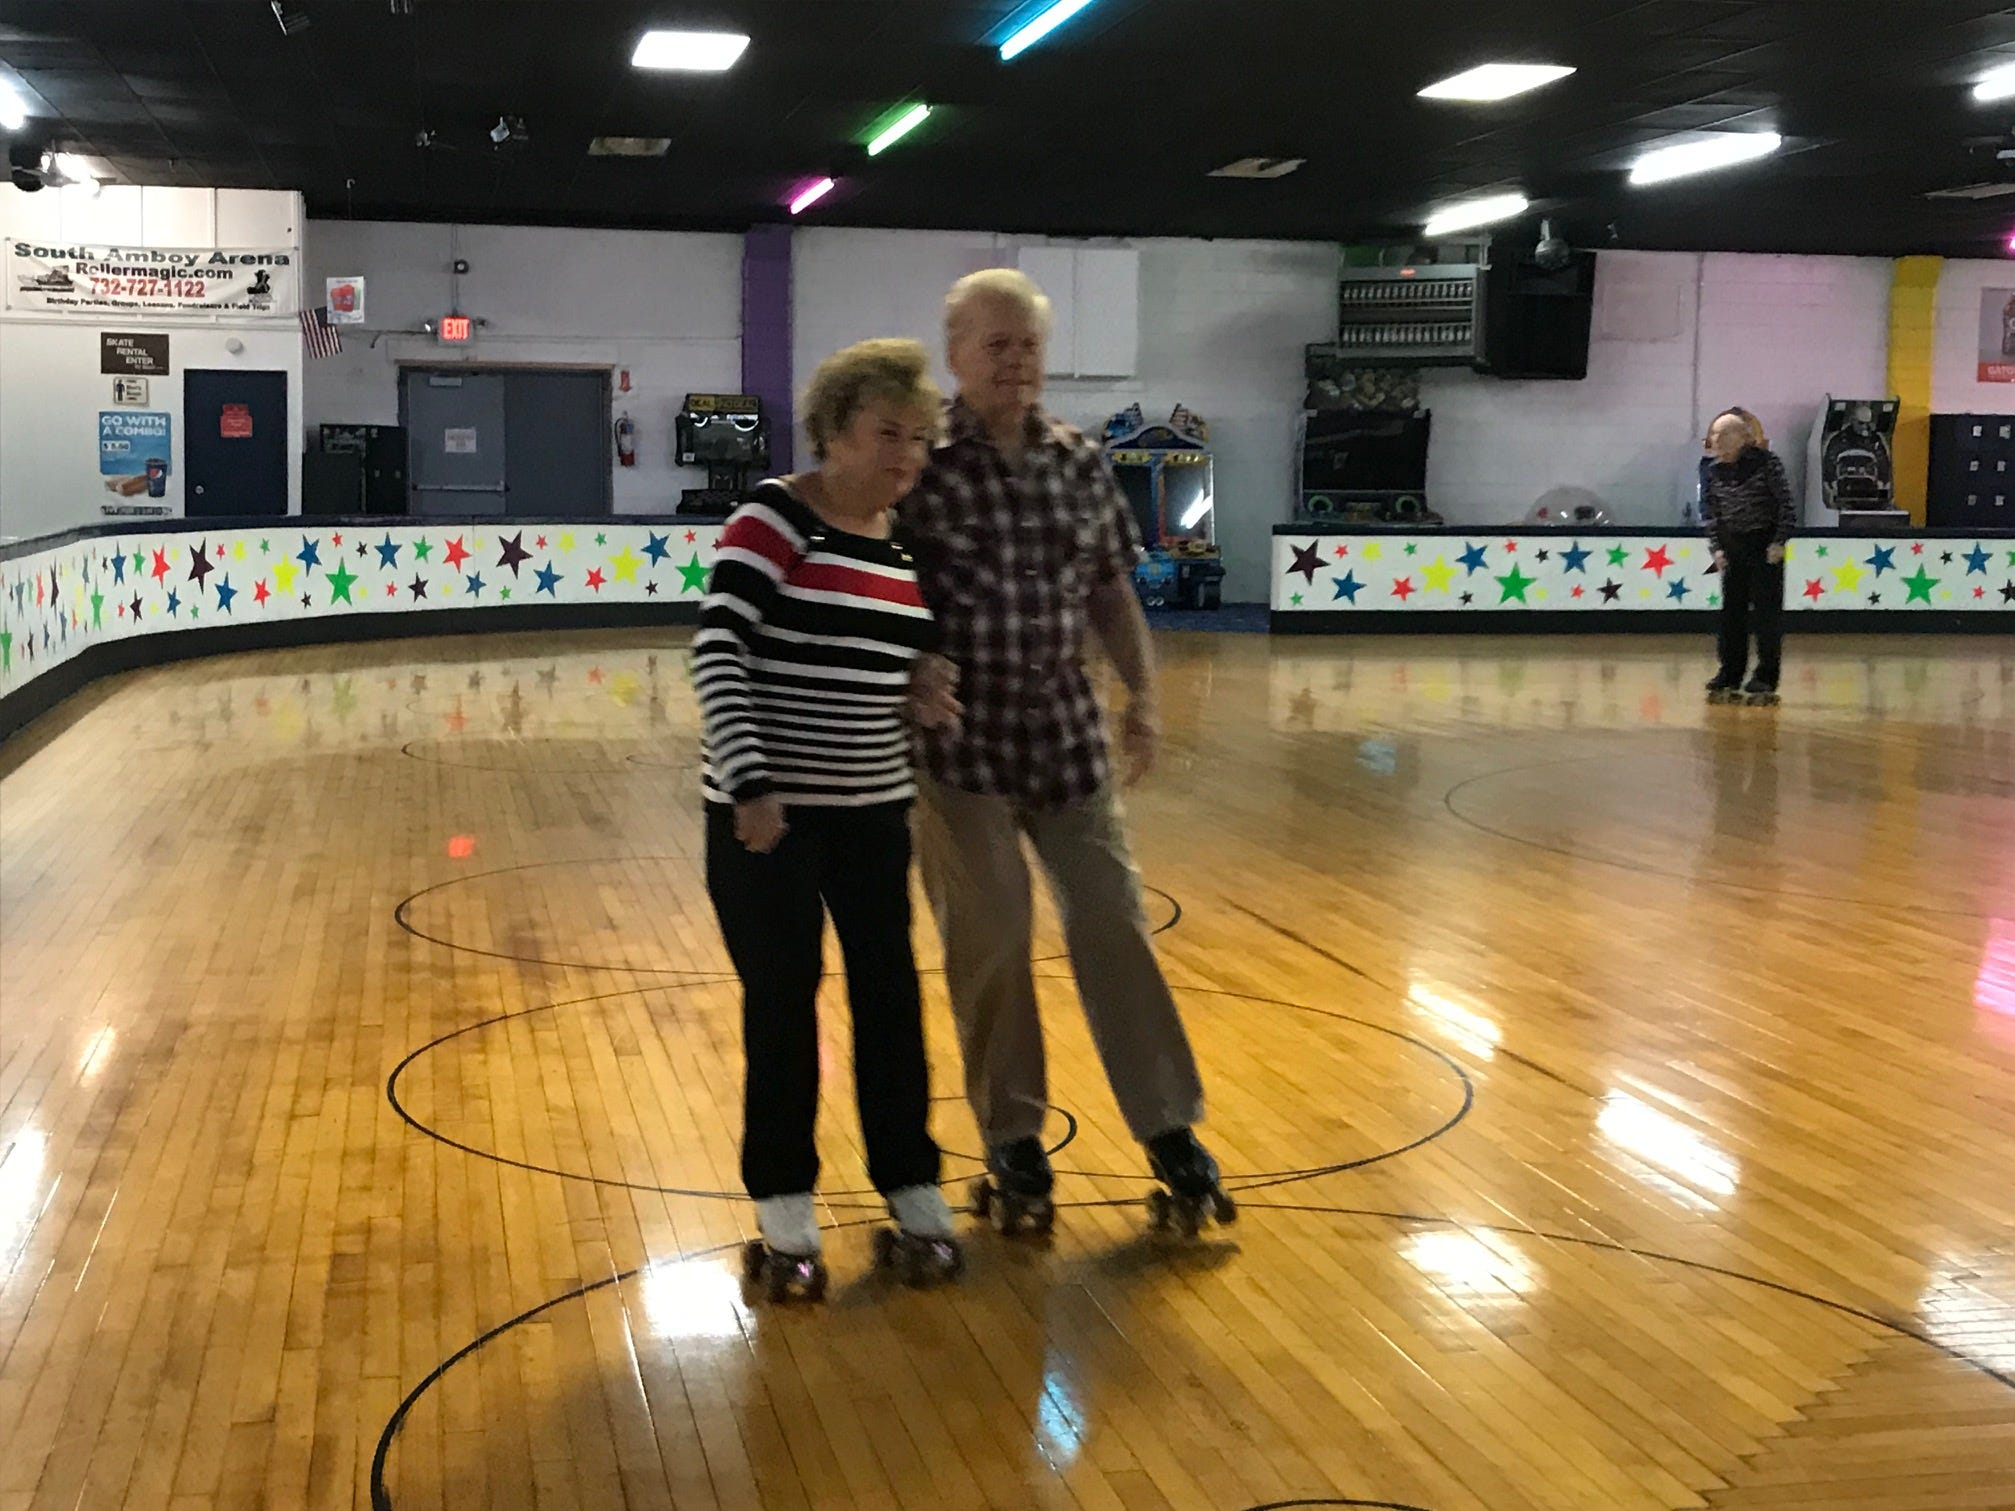 At least twice a week, more than 20 seniors, including Joannie Costello of Woodbridge and Eddie Daly of Newark, regularly gather at South Amboy Arenaand take to the rink for a couple hours of roller skating. The skating seniors range in age from 55 to 100.